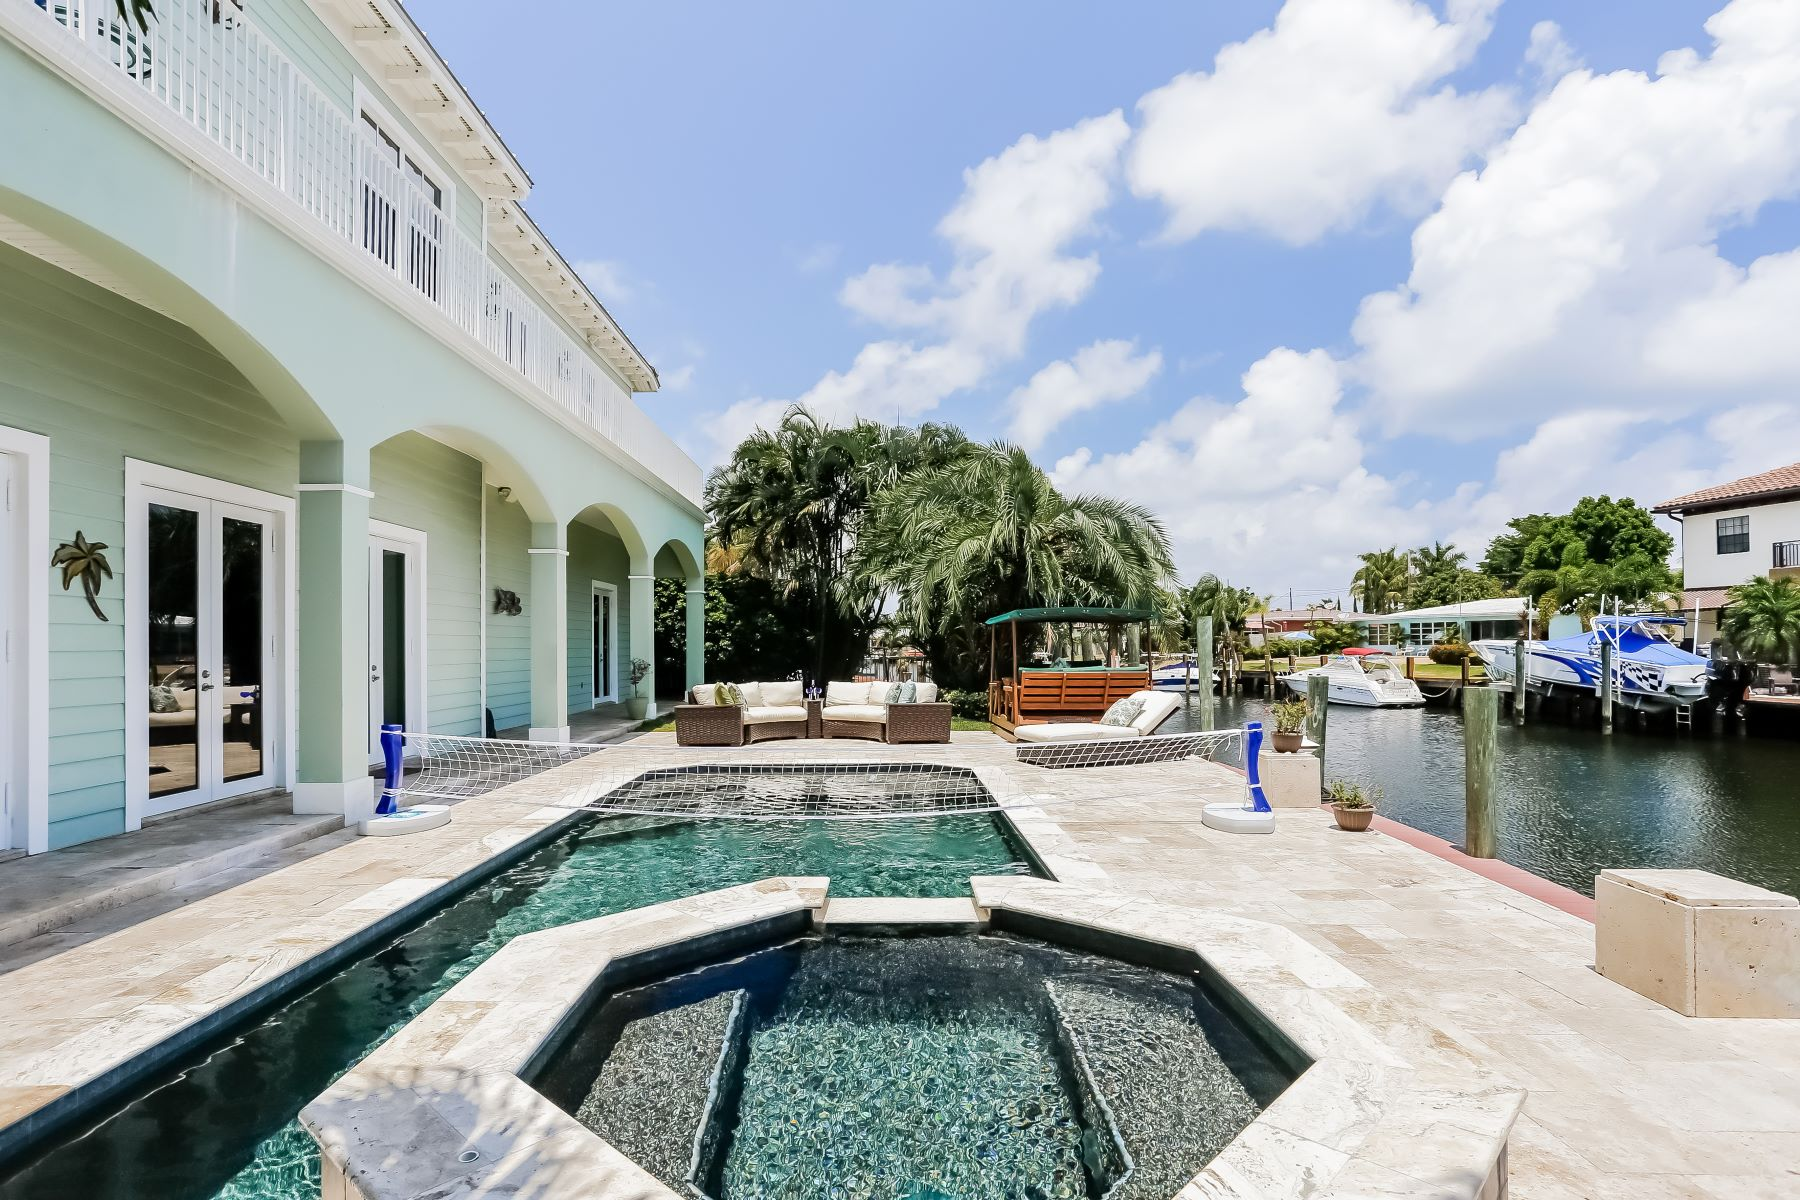 Villa per Vendita alle ore 4920 Ne 27th Ave Lighthouse Point, Florida, 33064 Stati Uniti